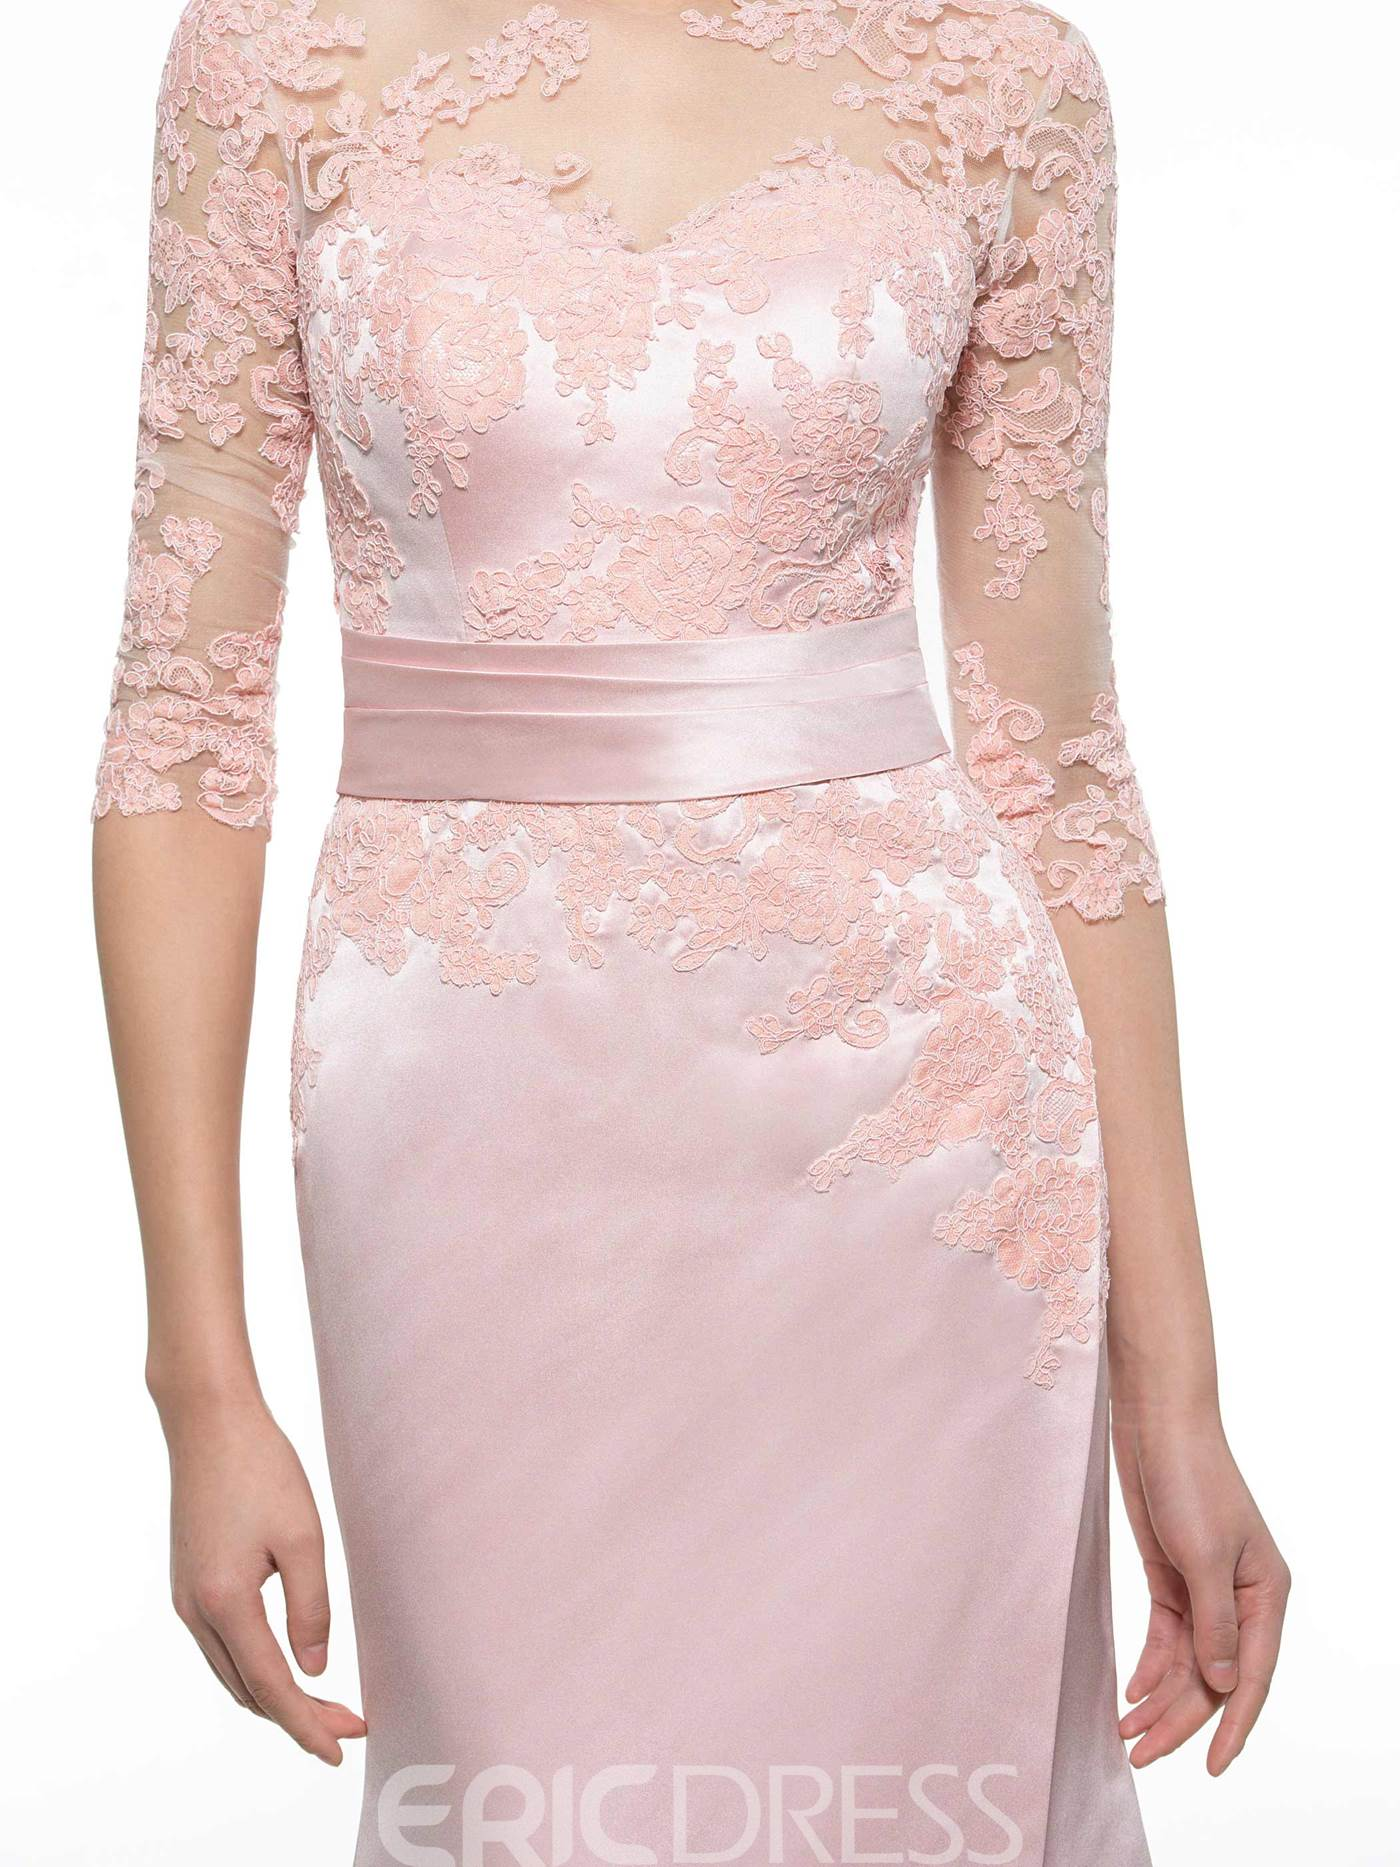 Ericdress Charming Mermaid Mother Of The Bride Dress